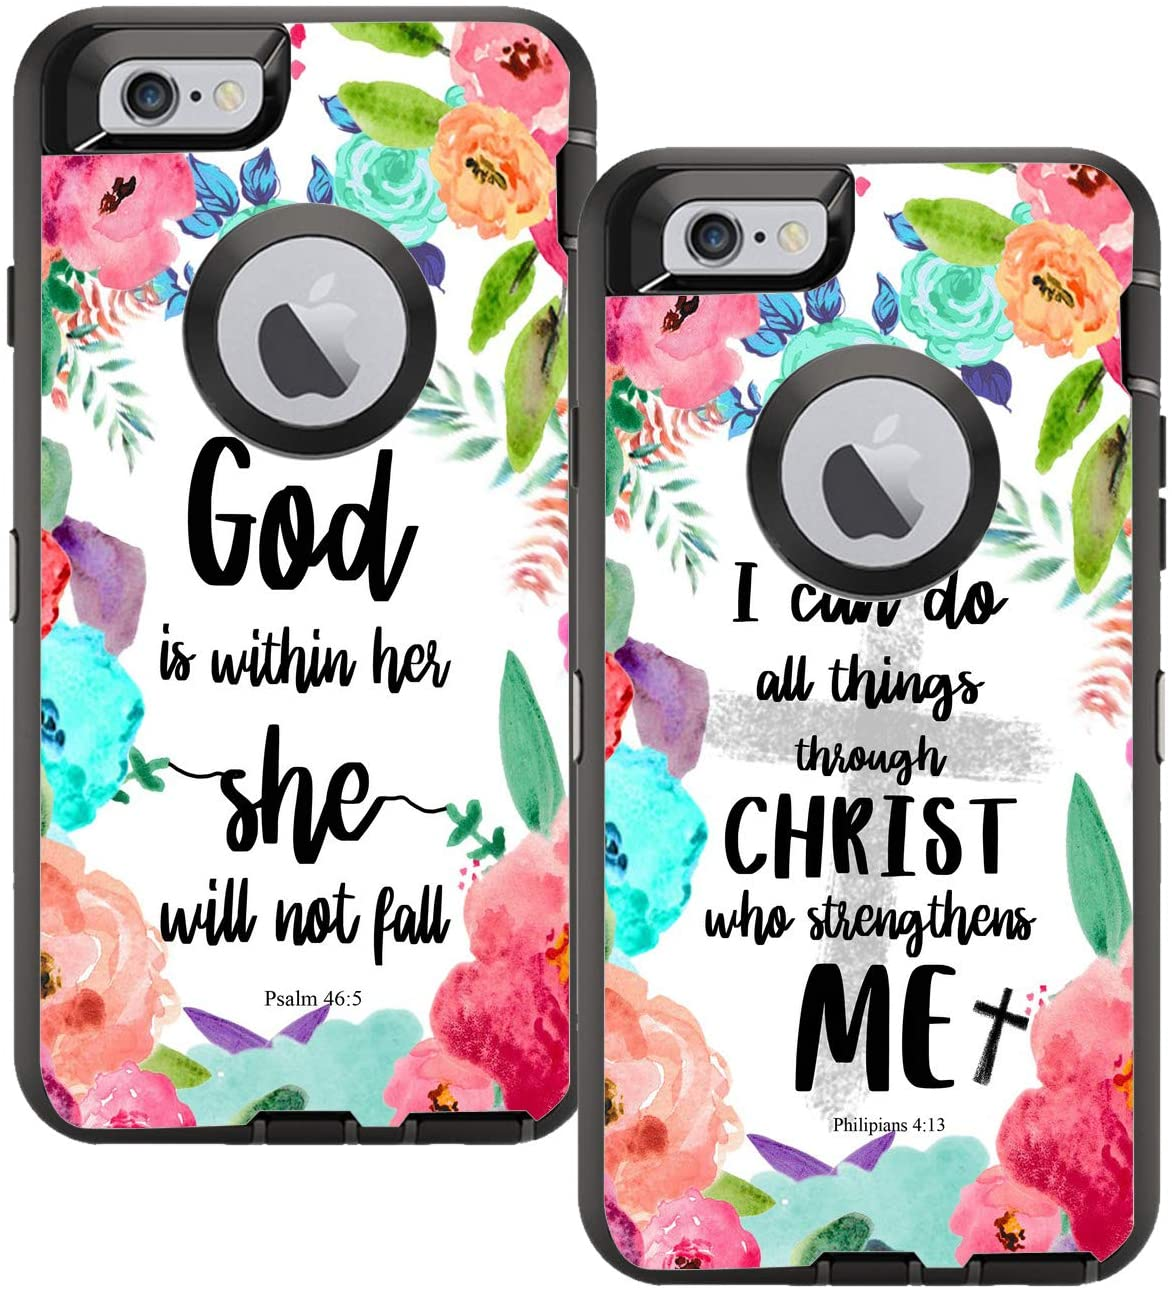 Teleskins Protective Designer Vinyl Skin Decals Compatible with Otterbox Defender iPhone 6 Plus / 6S Plus Case - I can do All Things and God is Within Her She Will Not Fall Design [Pack of 2 Skin]